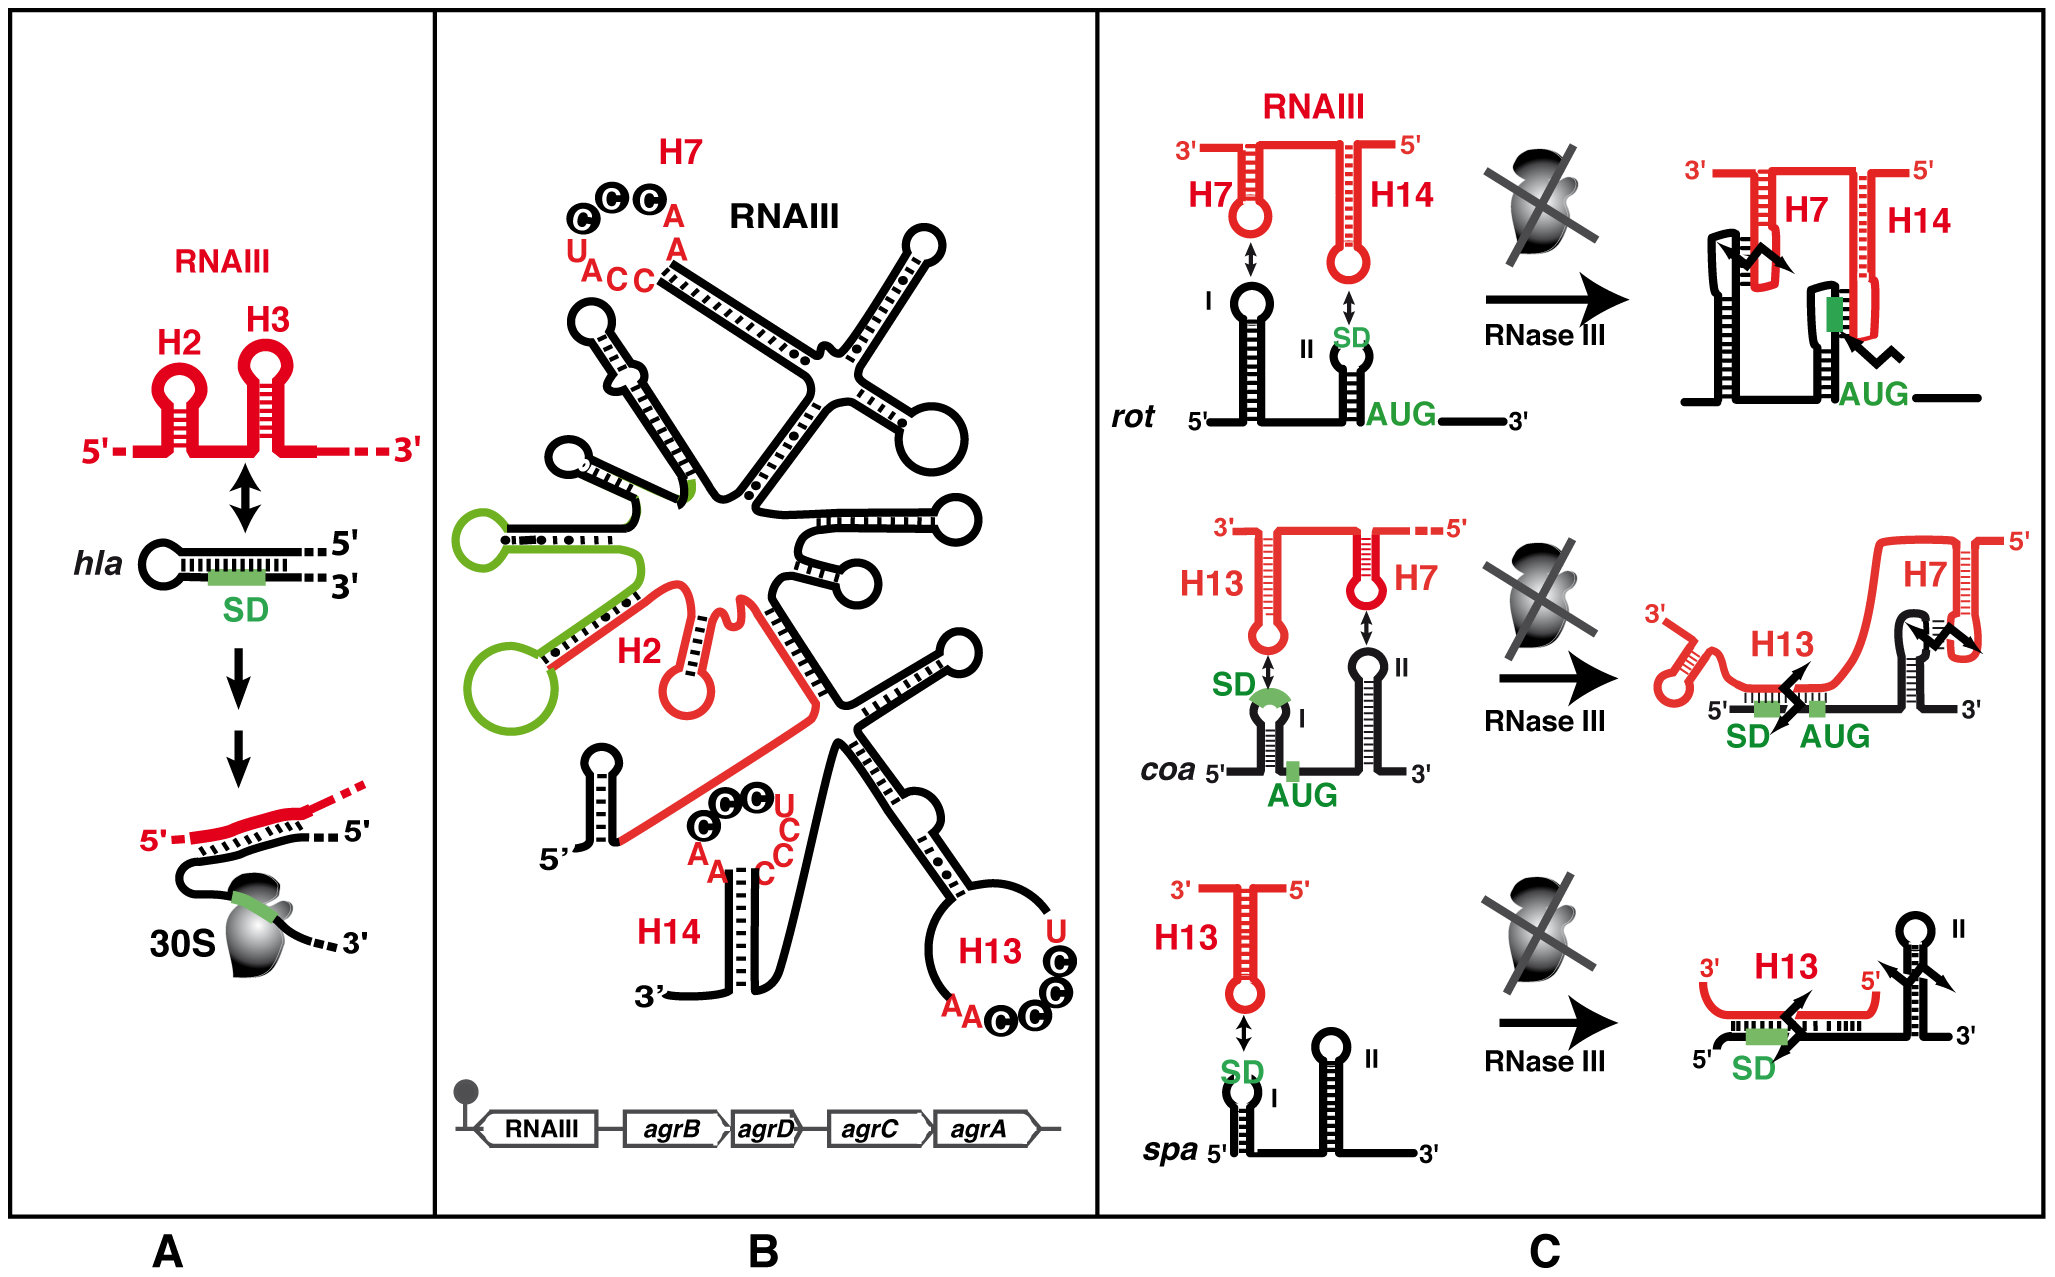 The functional RNAIII structure and its mRNA targets.